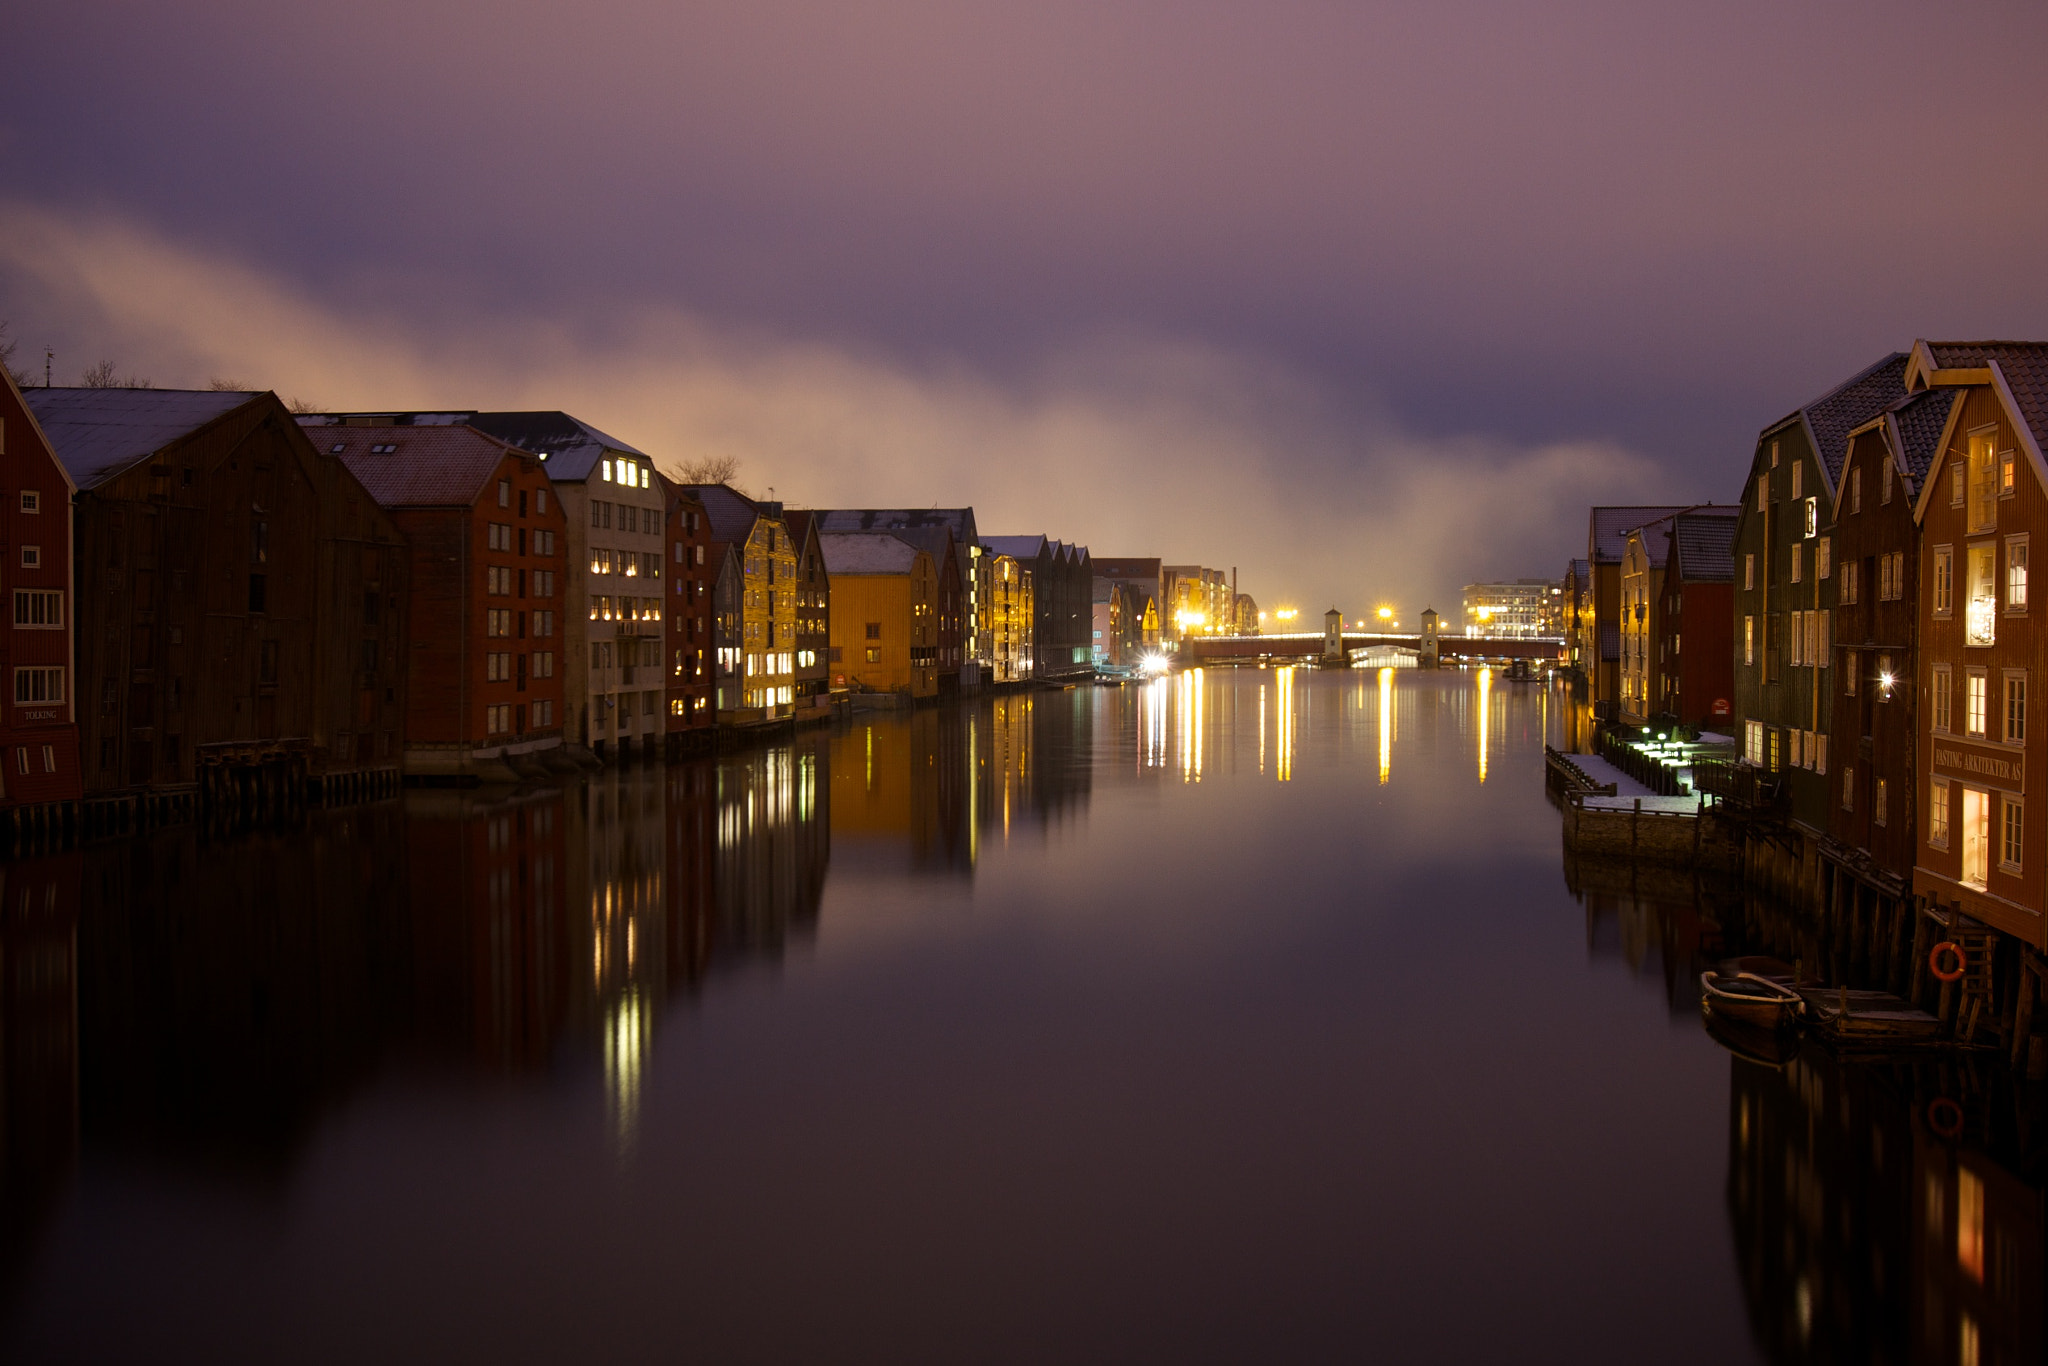 Photograph Night in Trondheim by Jøran Johnsen on 500px